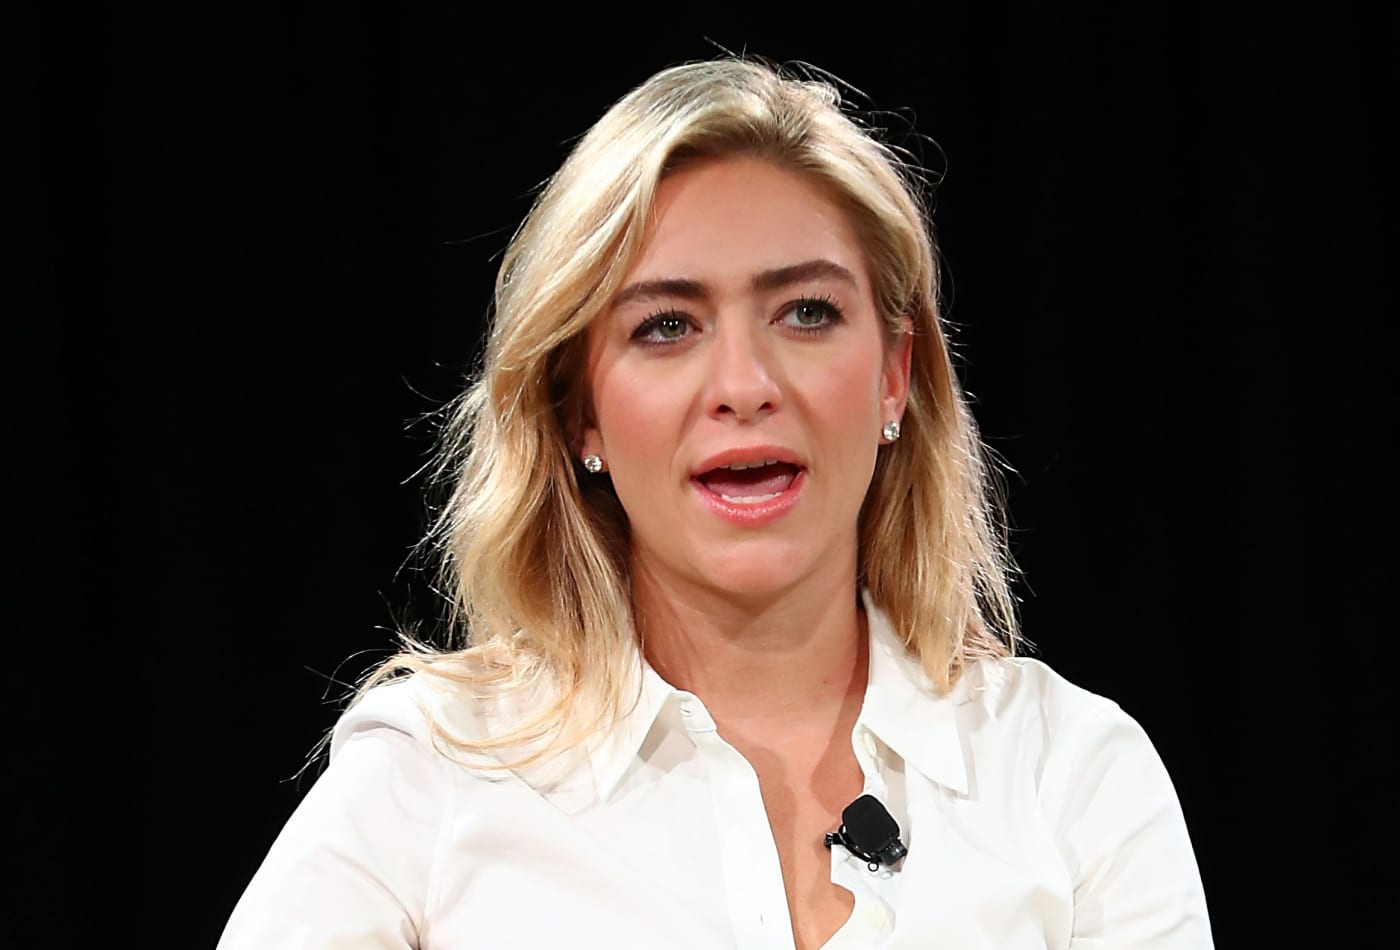 Bumble's CEO built a multibillion-dollar business – here's her advice for starting a side hustle: 'You can monetize anything'